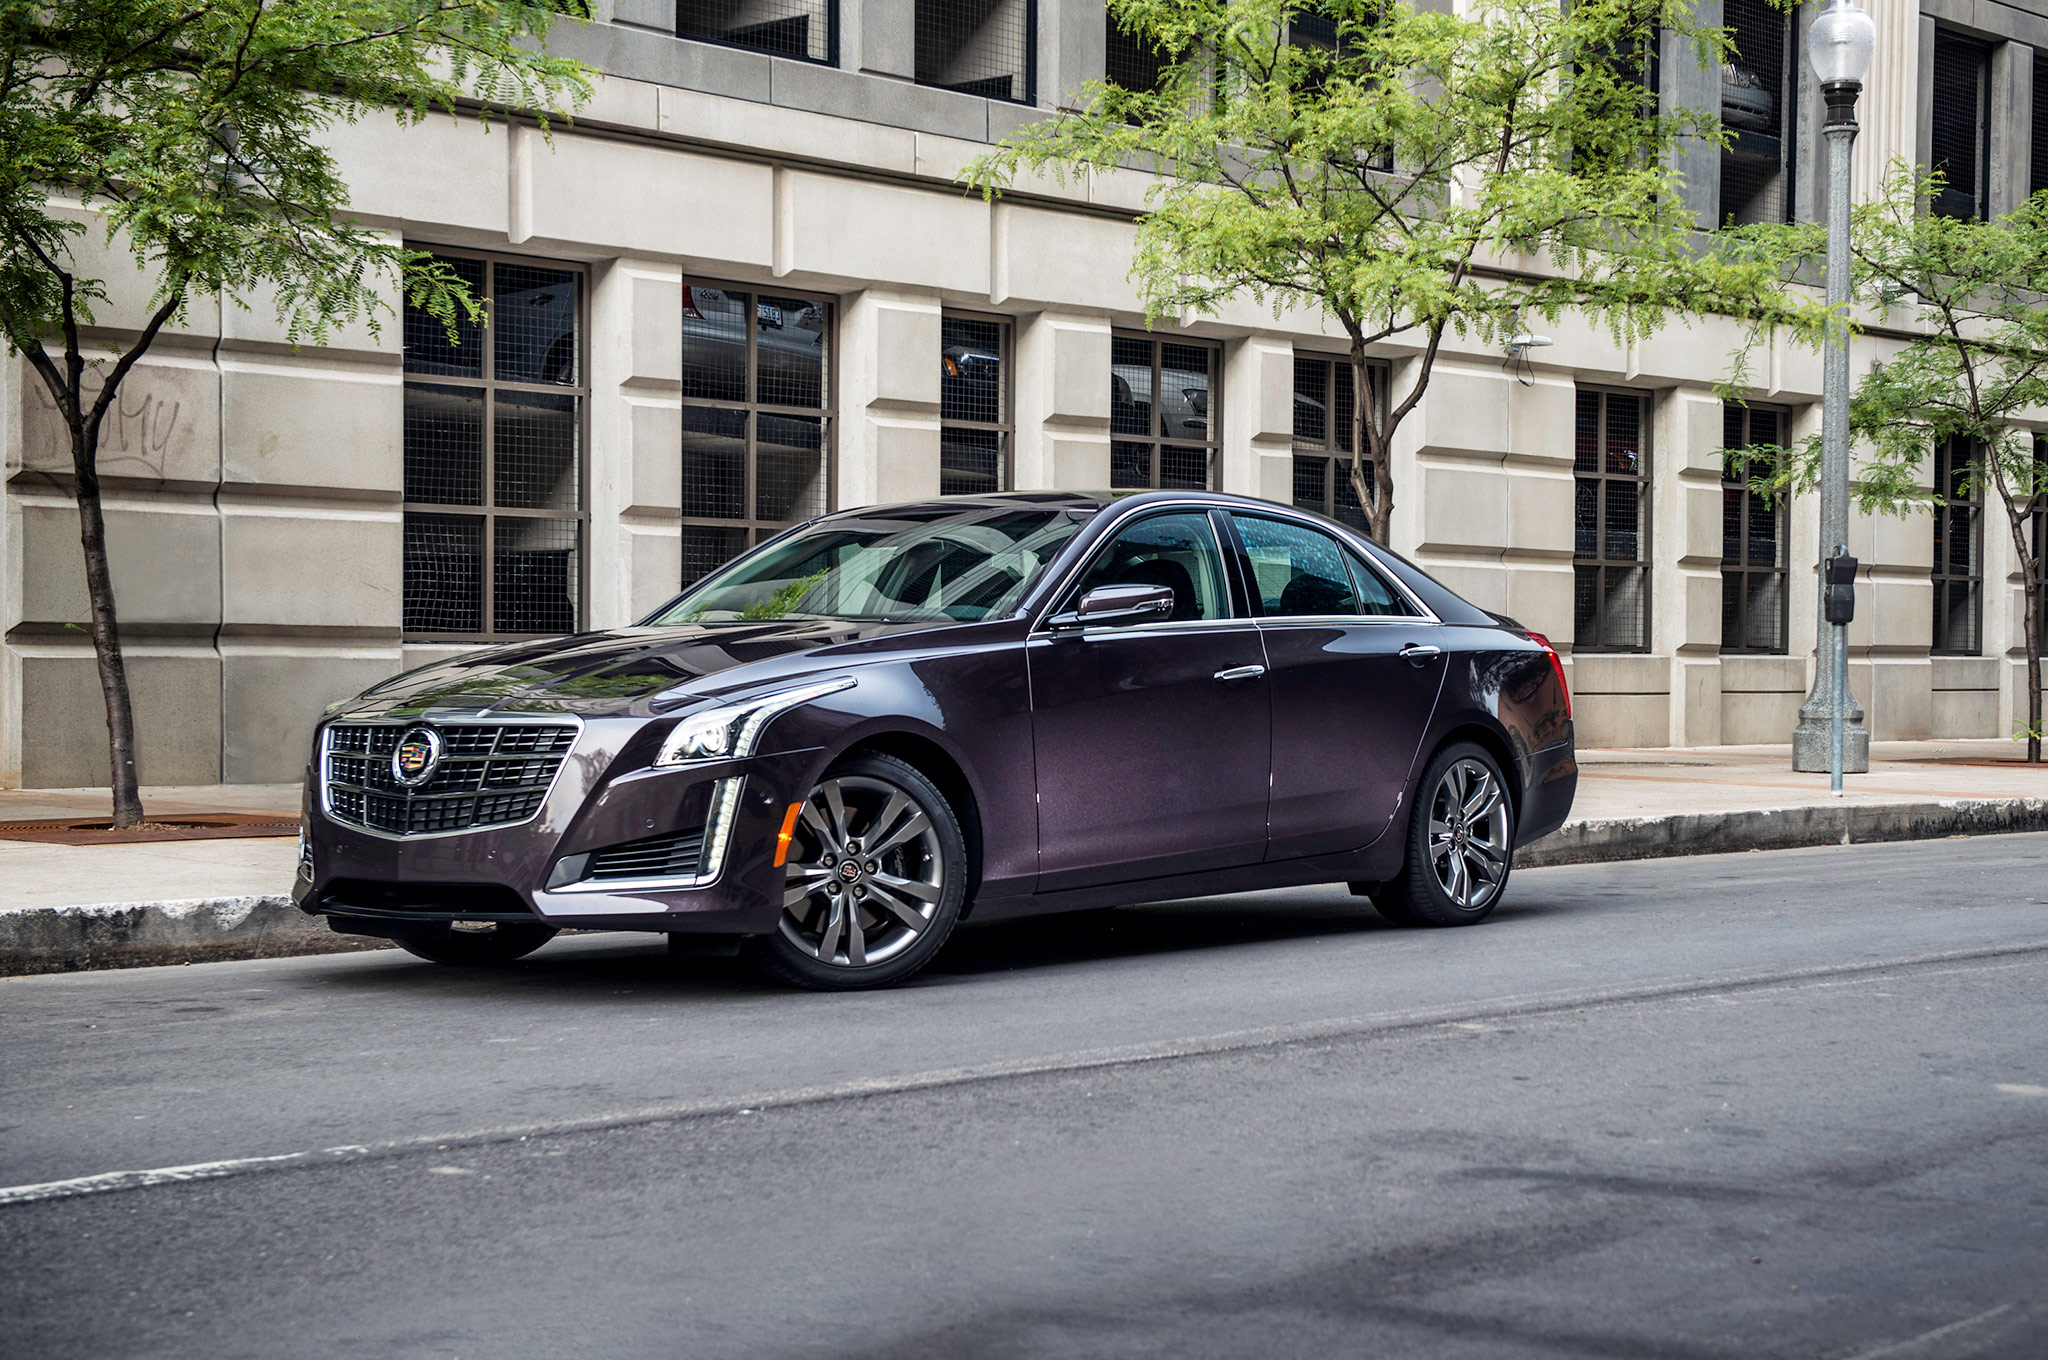 2014 Cadillac Cts Vsport Front Three Quarter 11